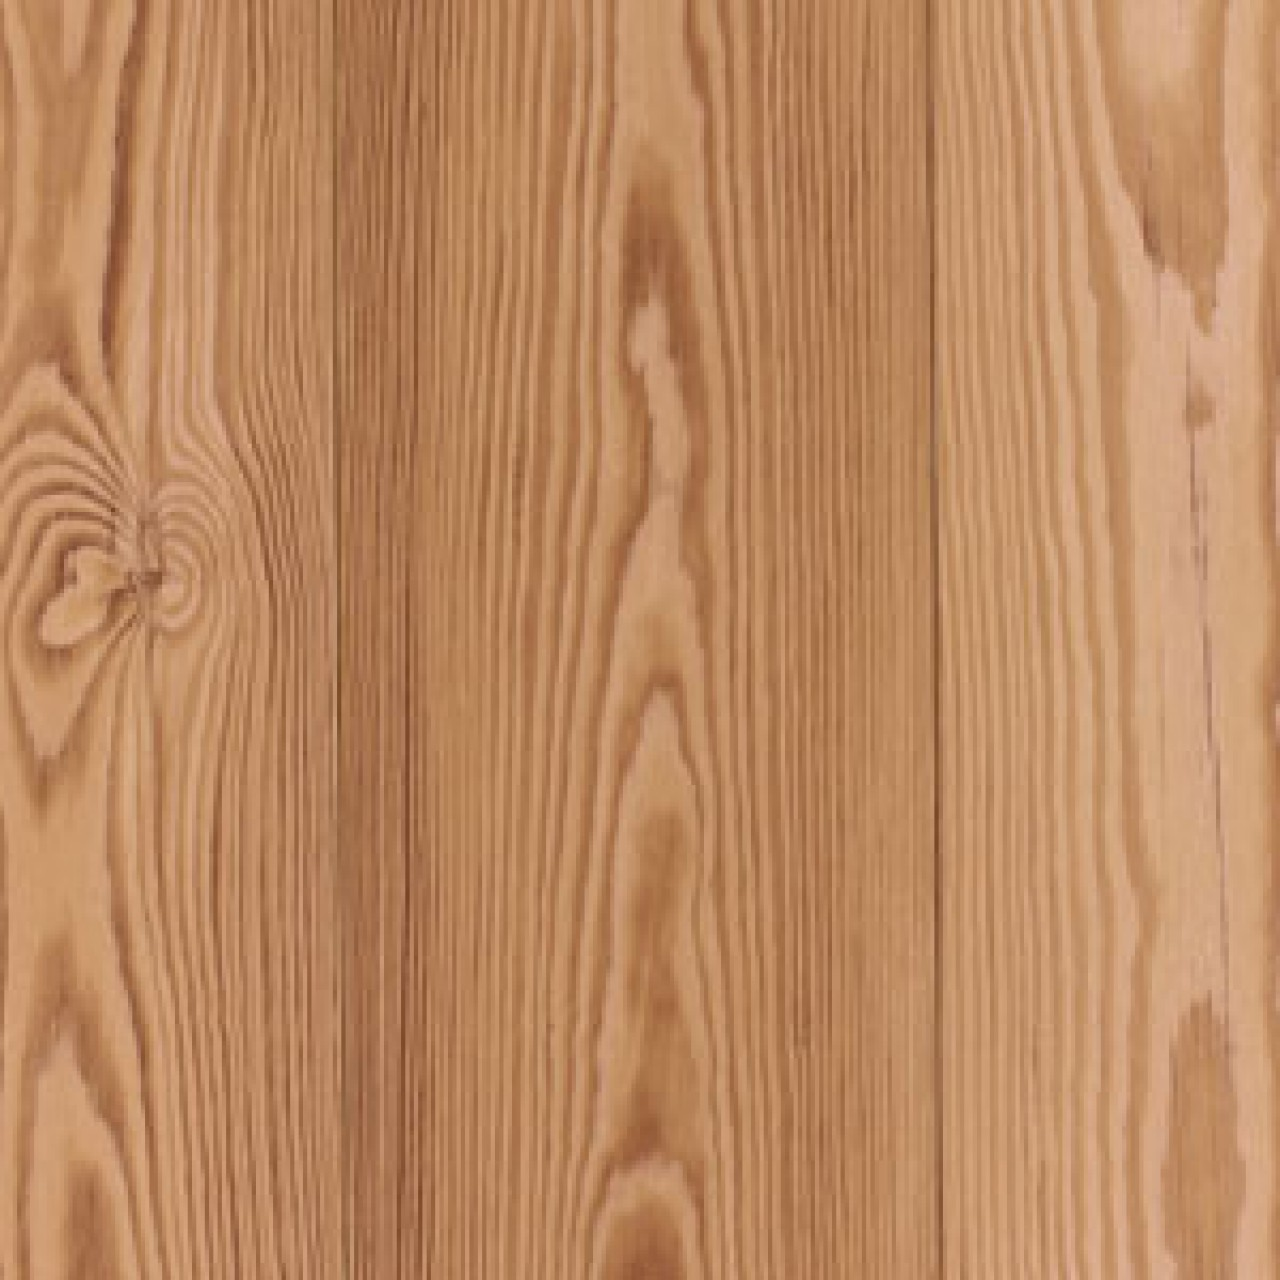 Mohawk laminate flooring what 39 s trending and why for Square laminate floor tiles